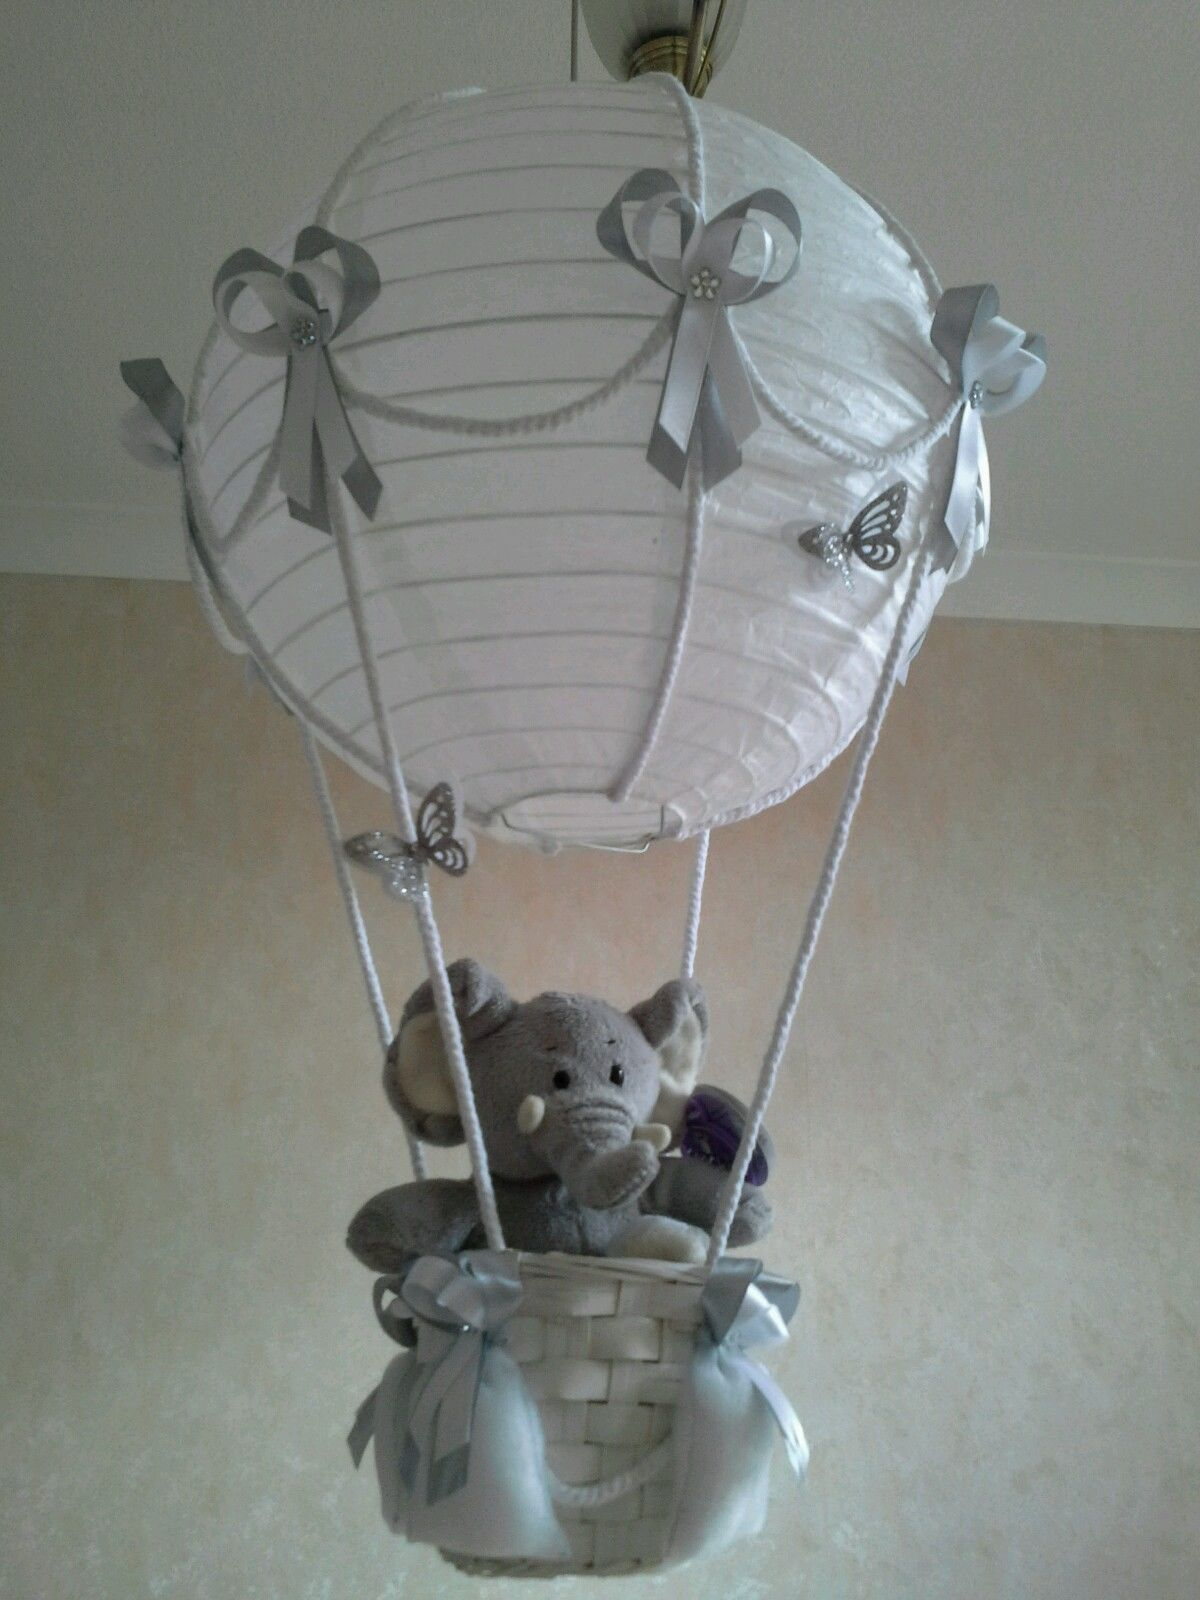 Elephant lamp for nursery - Cute Little Elephant In Hot Air Balloon Light Lamp Shade Made To Order